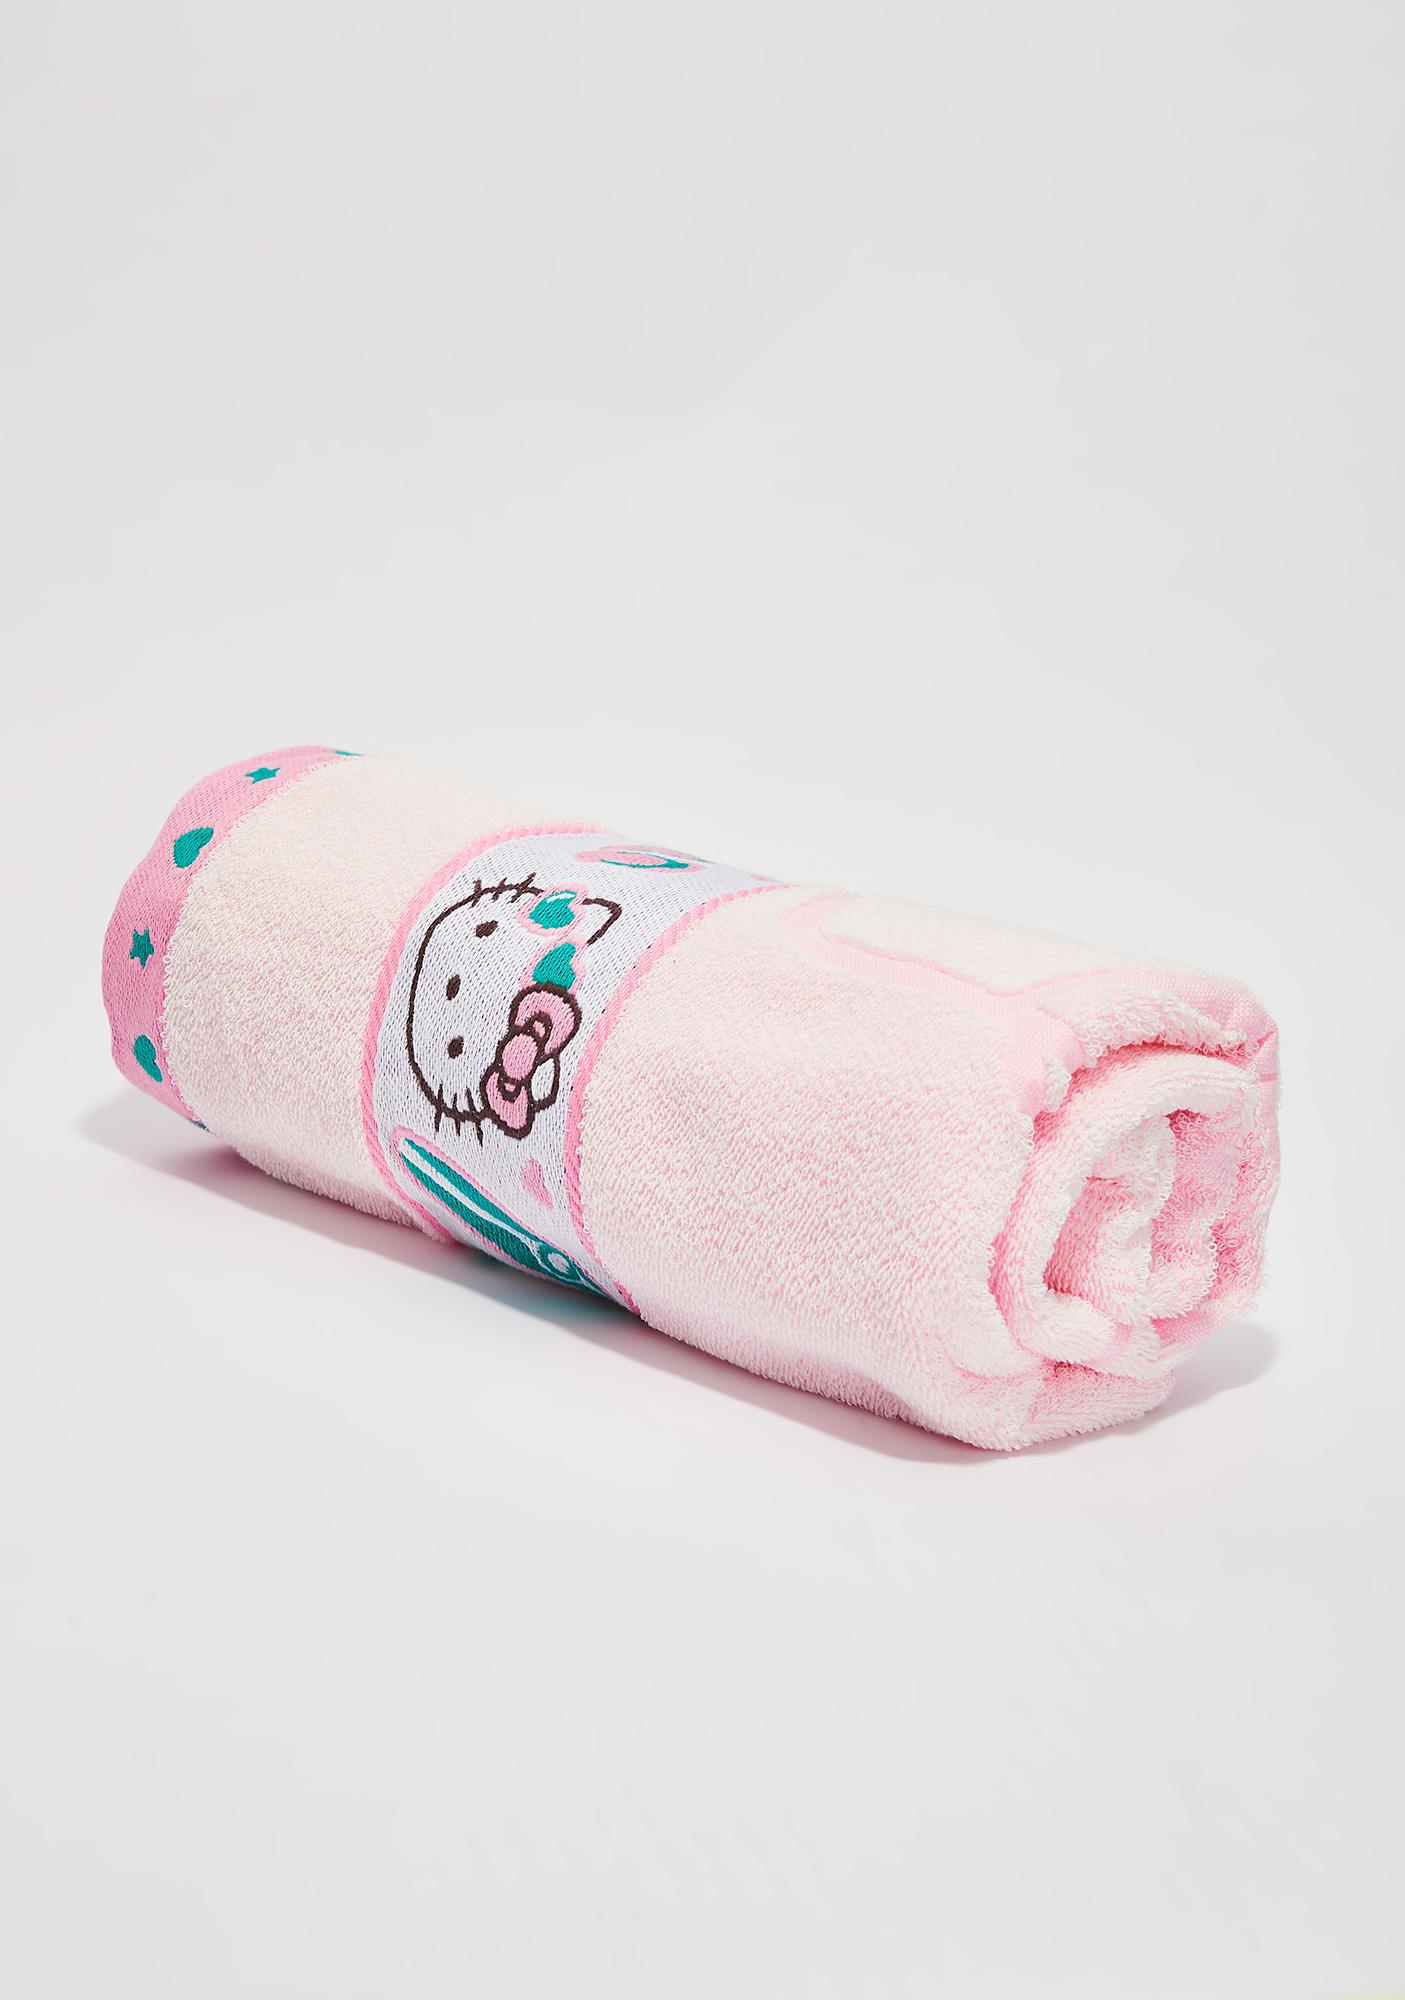 Sanrio Pink Beach Towel